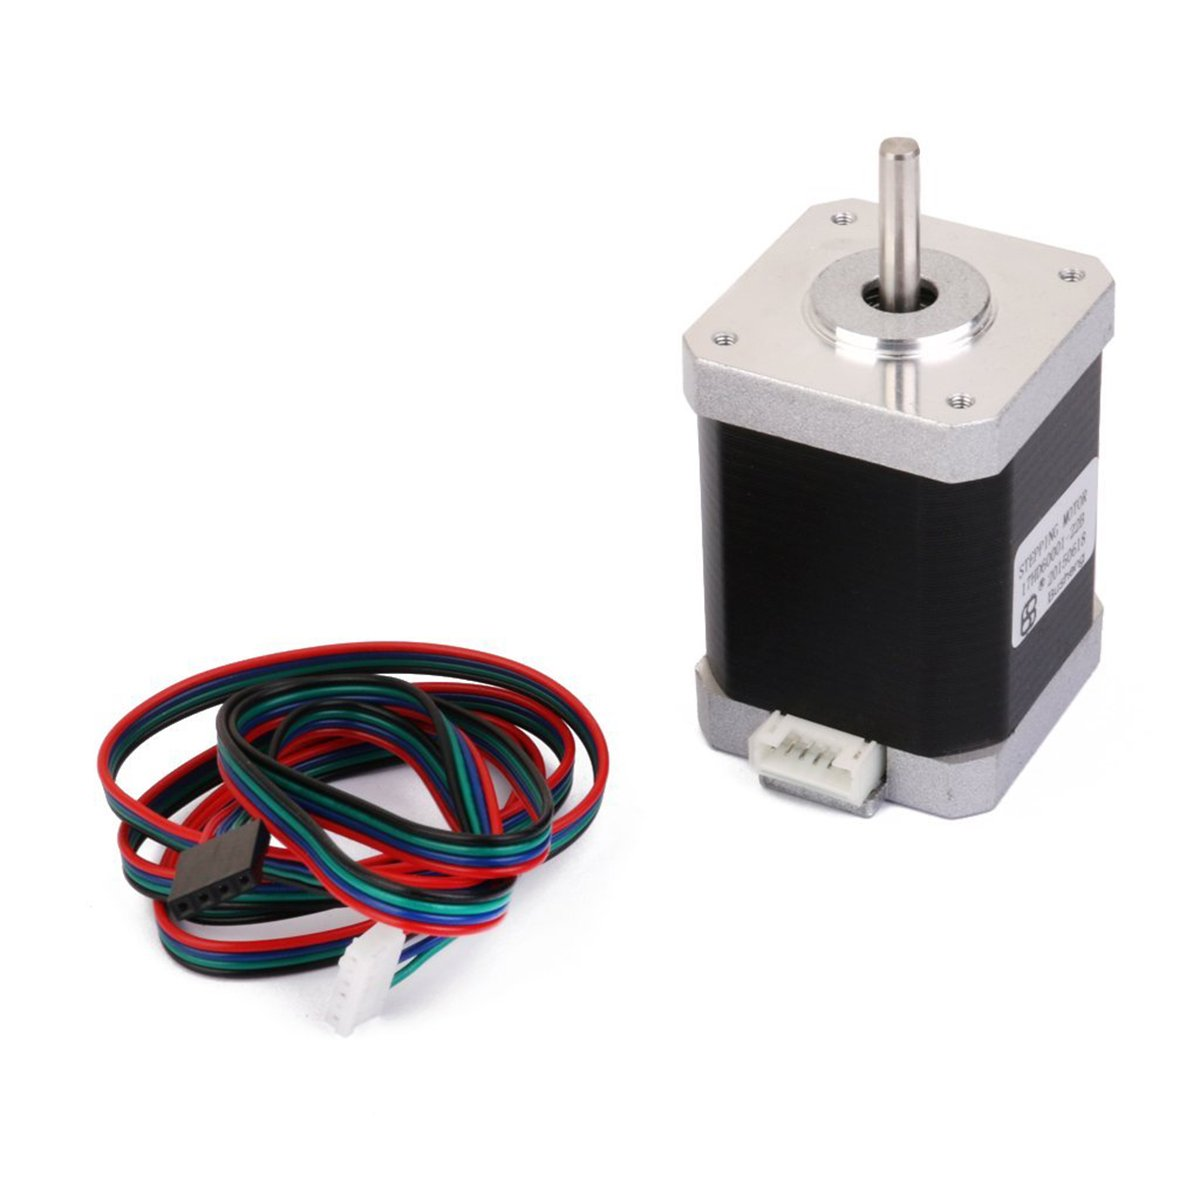 Amazon.com: UEETEK Nema 17 2 Phase 4-Wire 1.5A 60mm 1.8° Stepper Motor for  3D Printer: Industrial & Scientific